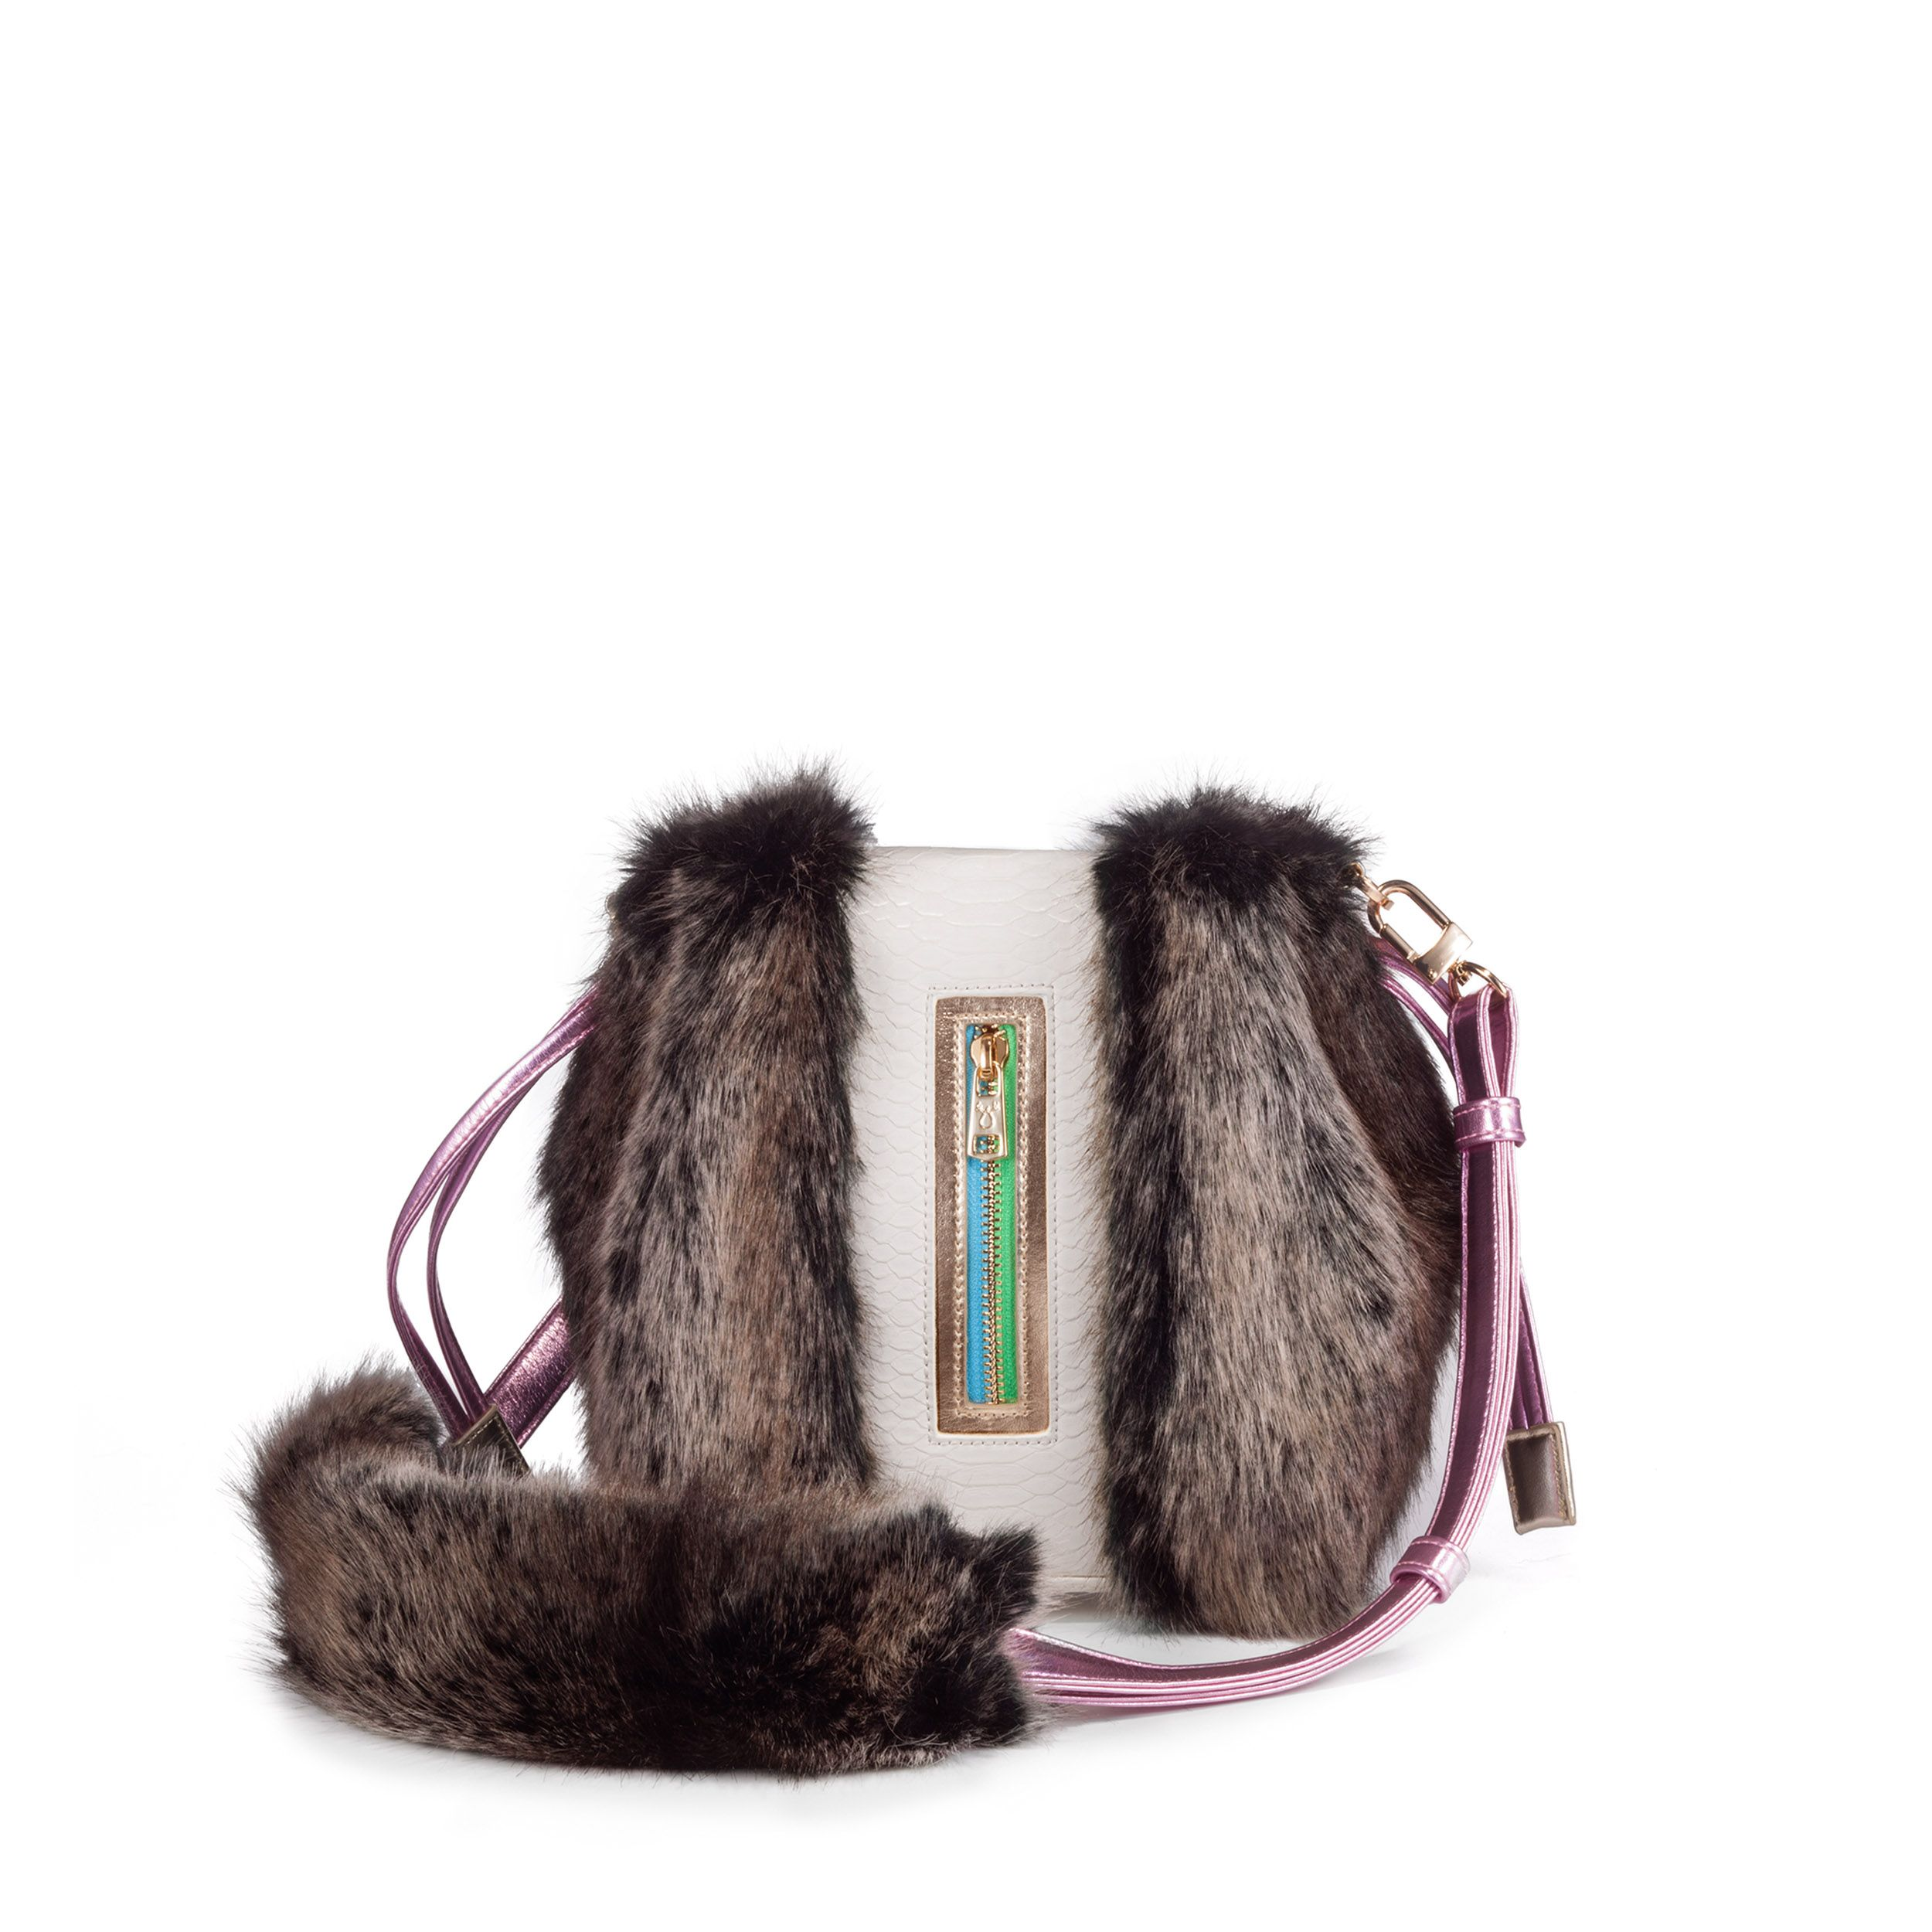 NAMI multicolor. A mini vegan bucket bag with an adjustable shoulder strap. Made of luscious faux exotic skins and faux fur #NeverLeather #NeverFur